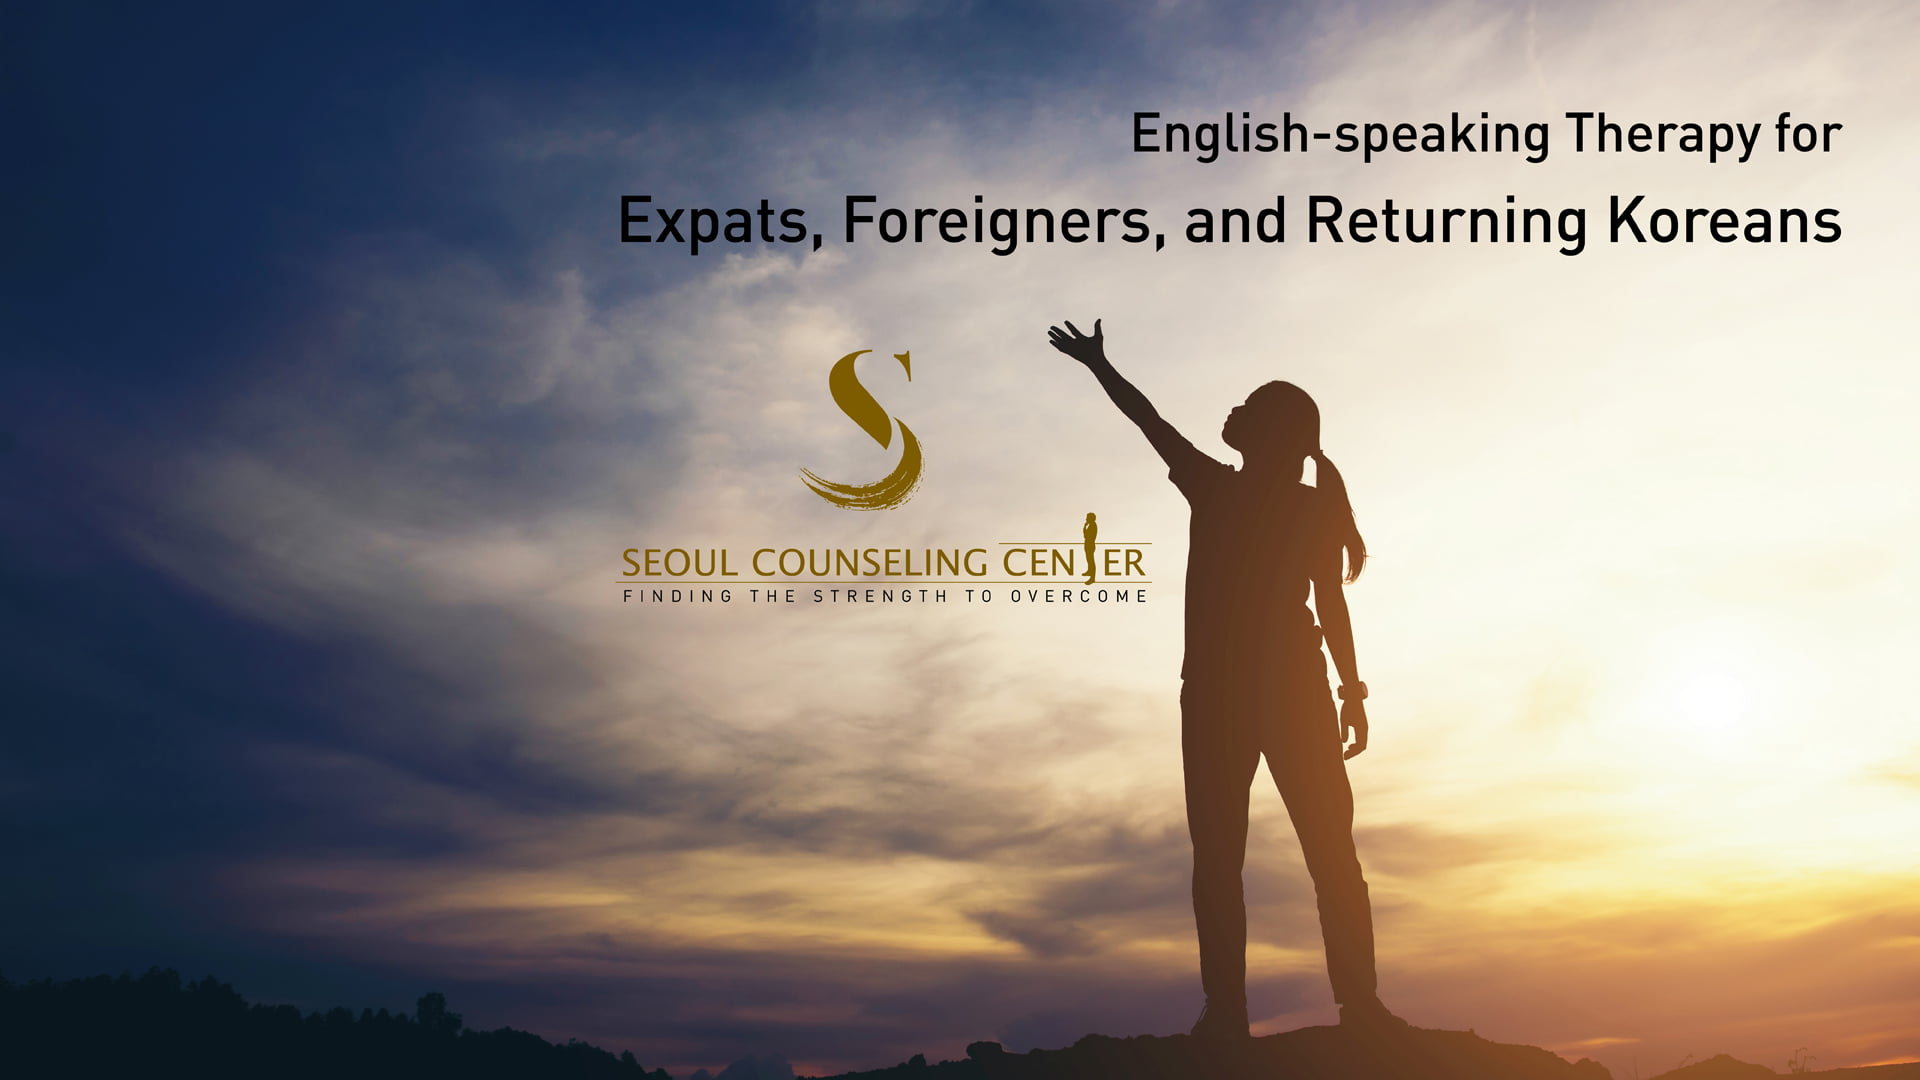 Seoul Counseling Center | Gangnam-gu, Seoul